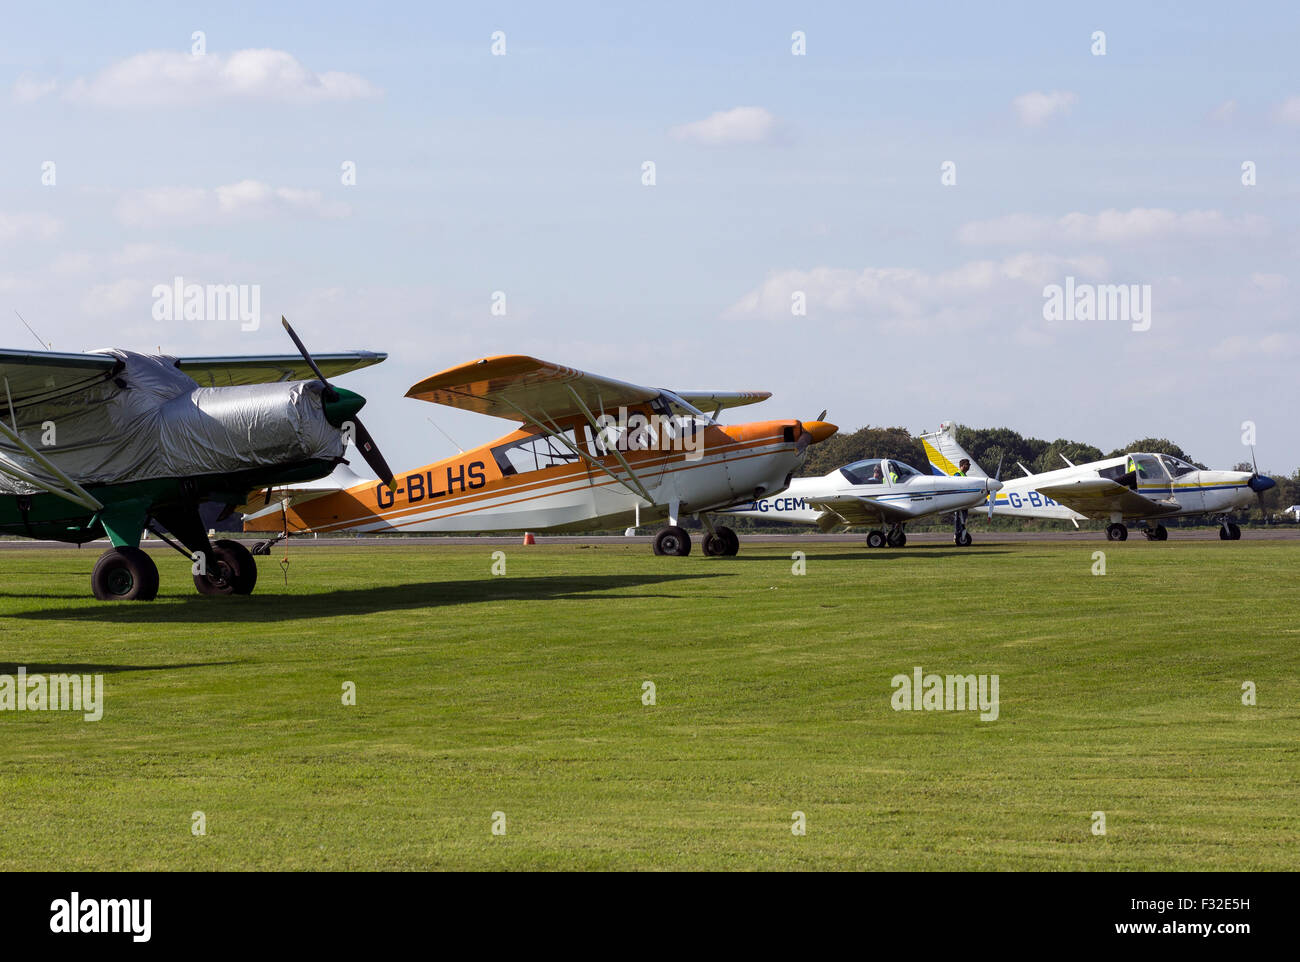 planes at dunkeswell airport,Dunkeswell Aerodrome is situated in the heart of the Blackdown Hills, 6 miles North - Stock Image